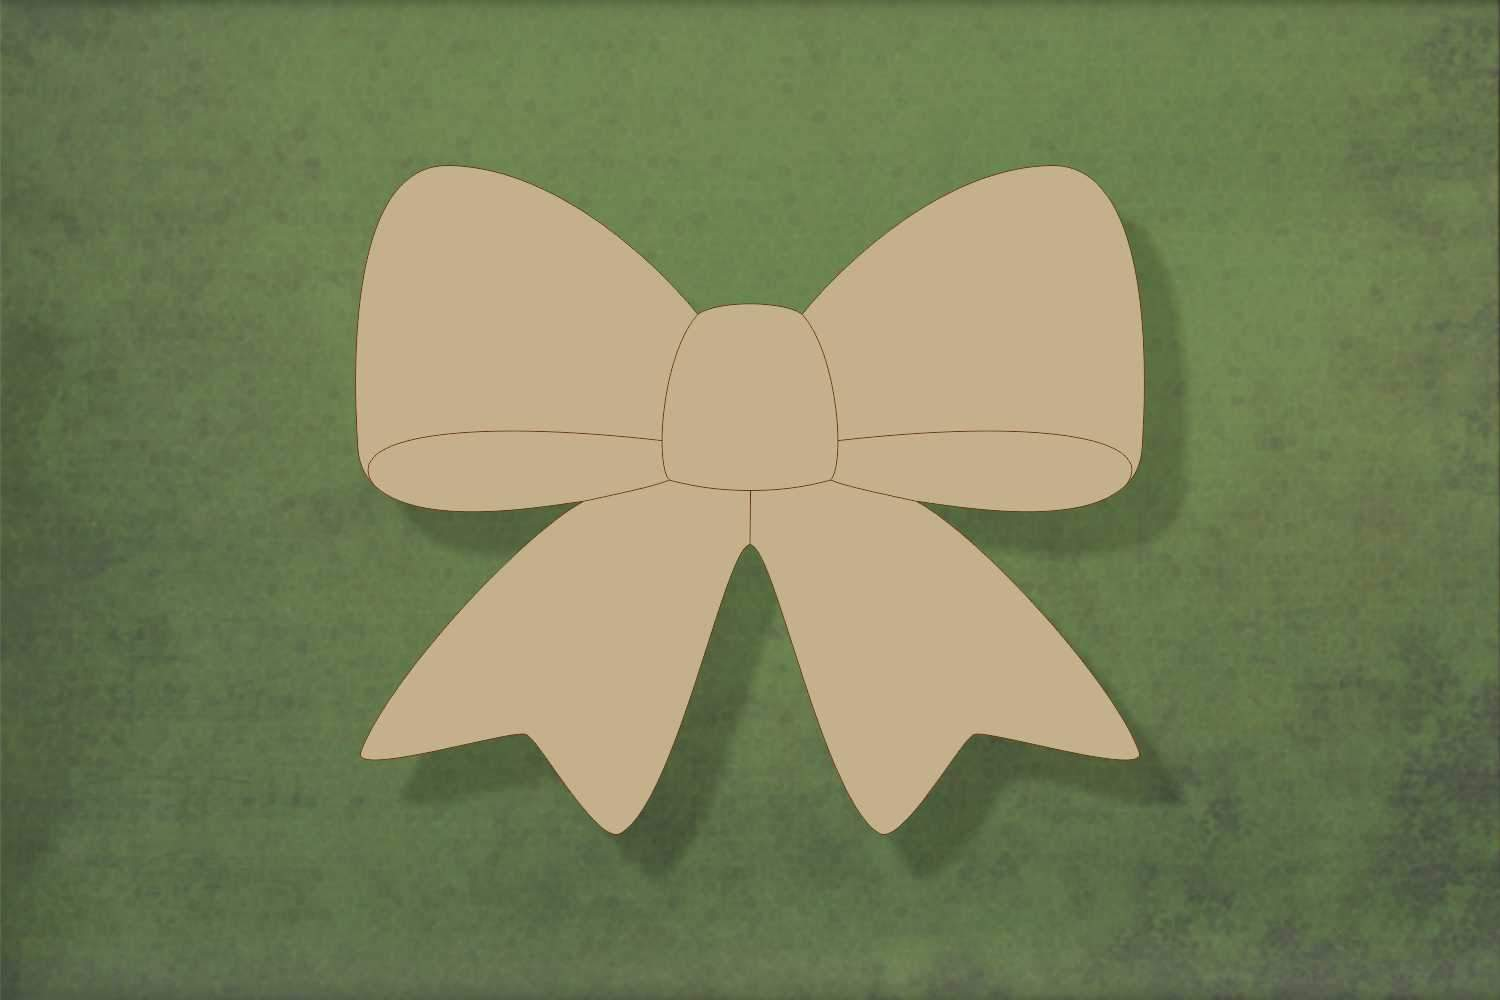 Laser cut, blank wooden Bow shape for craft